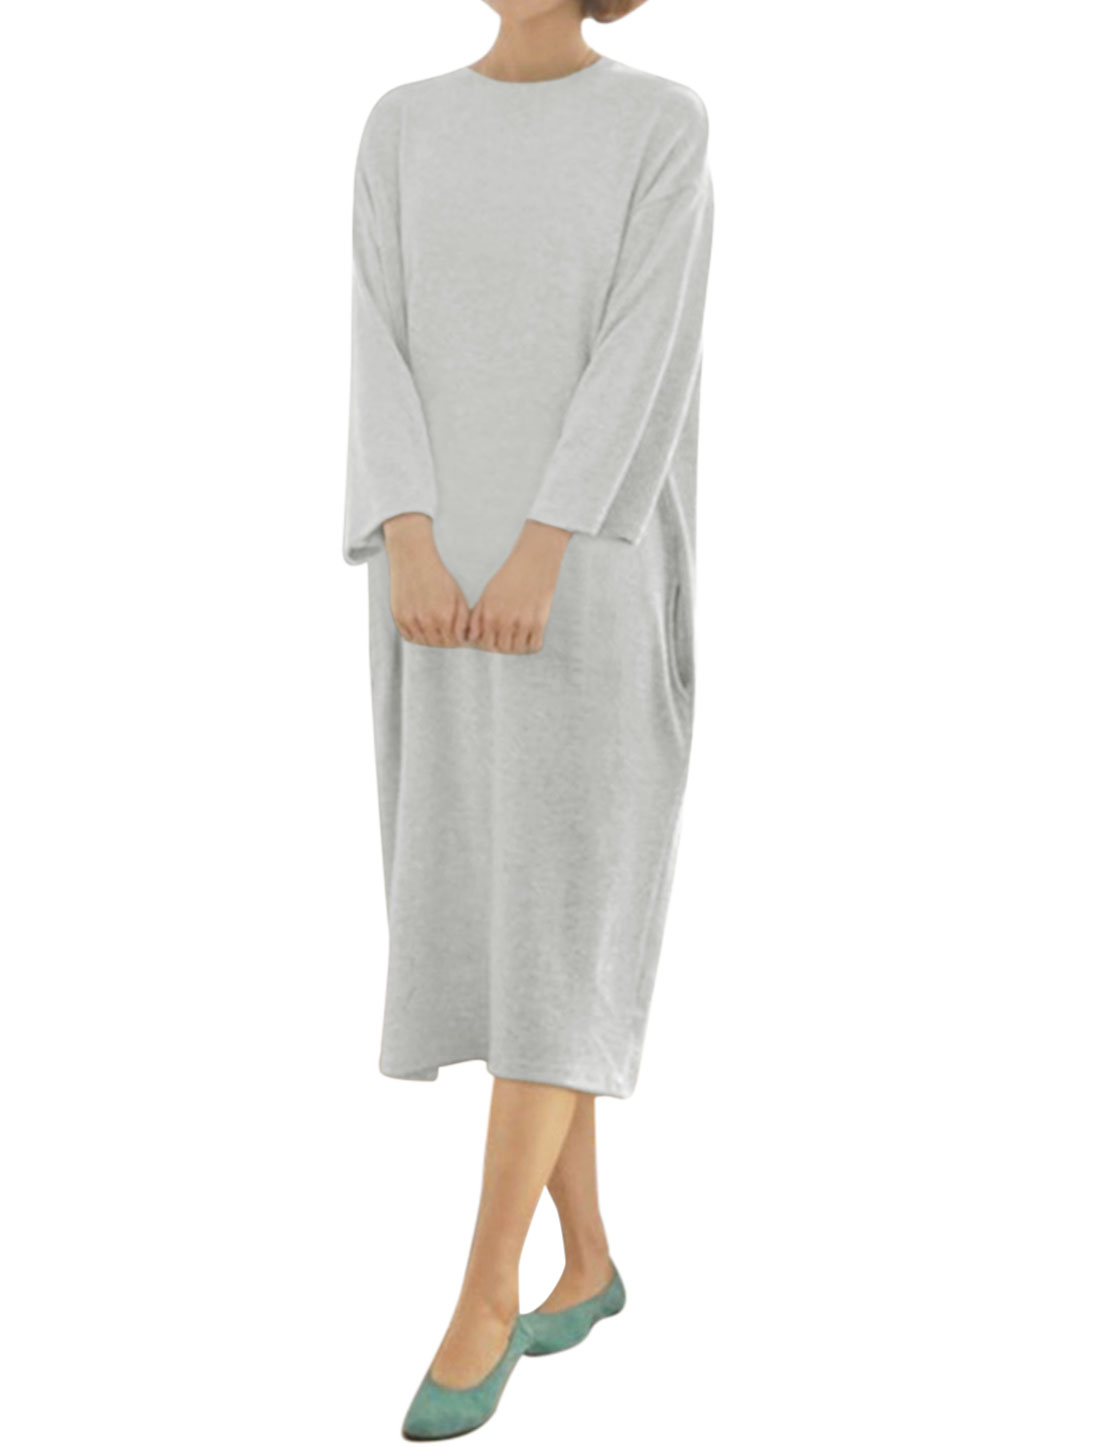 Women Round Neck Long Sleeves Two Pockets Loose Midi Dress Light Gray M